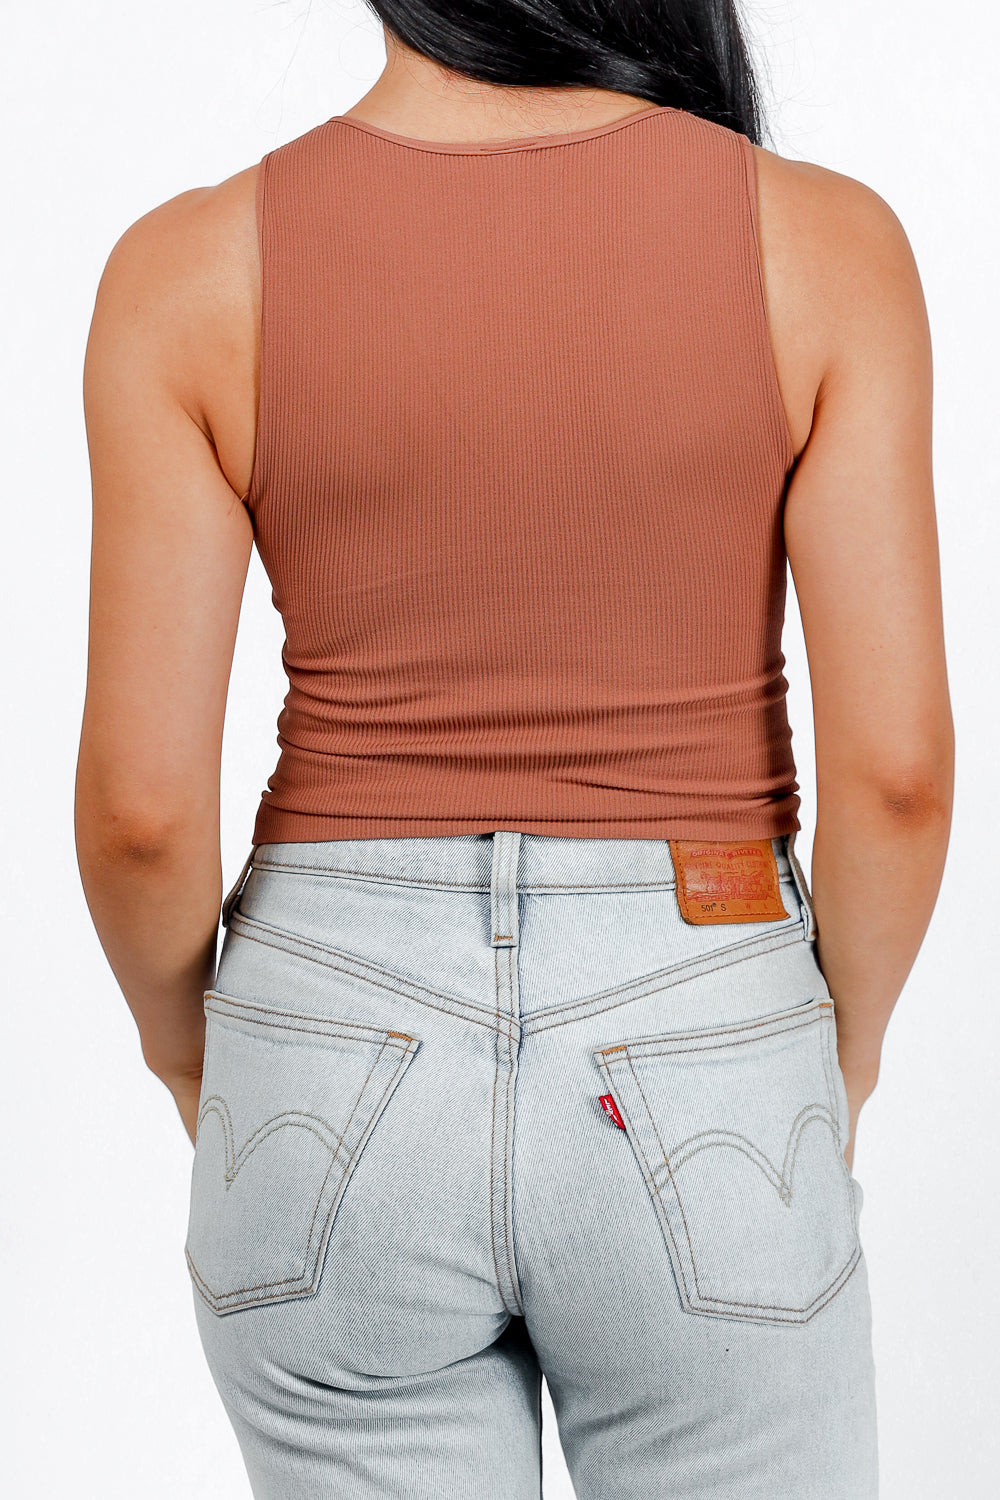 Say So High Neck Tank (Cognac)